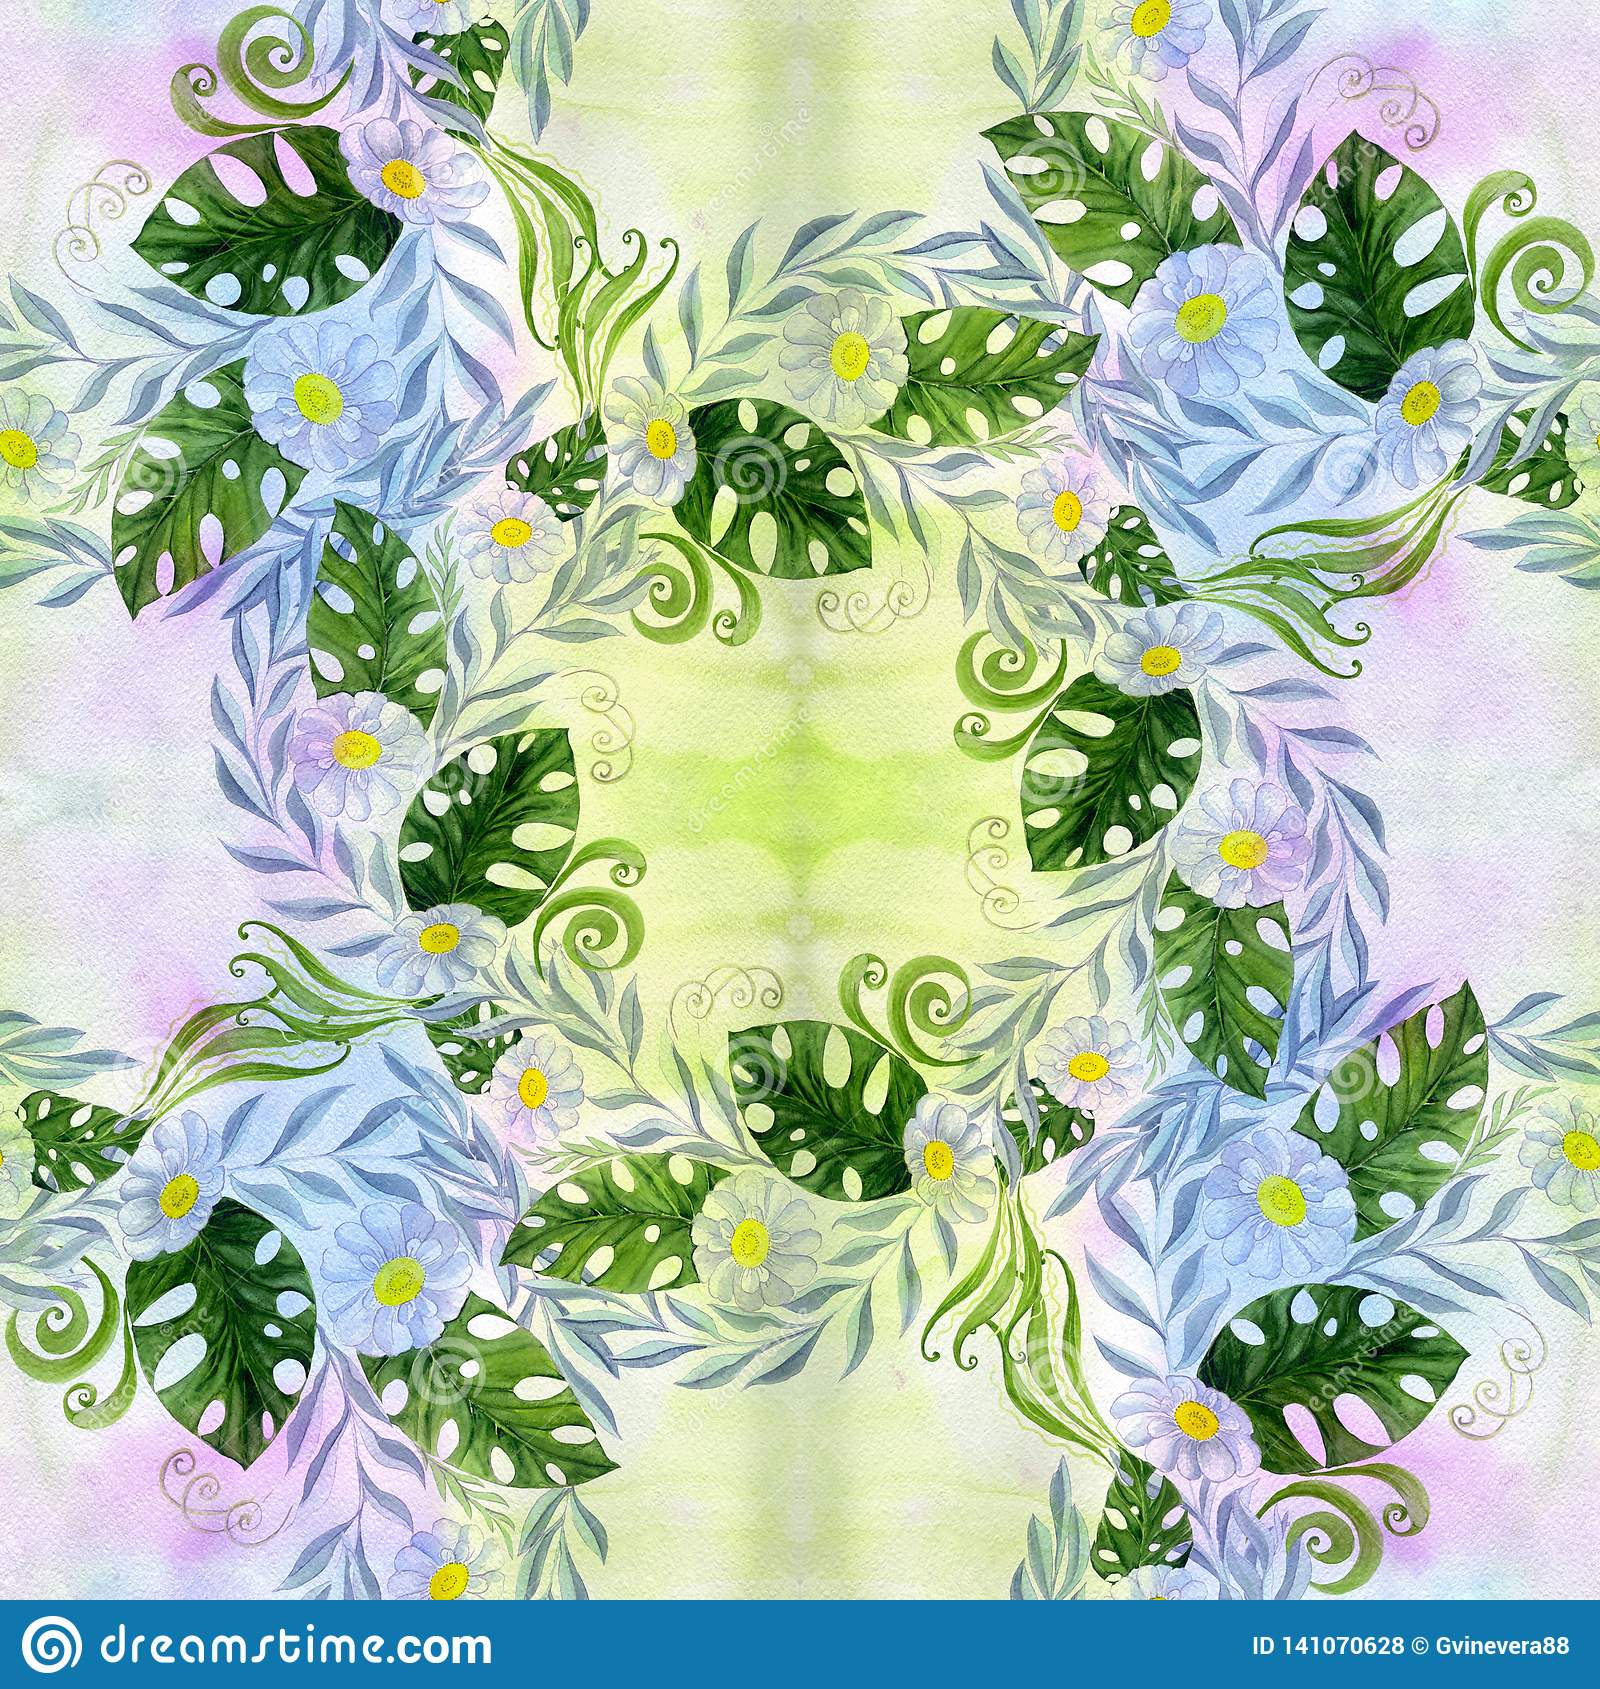 A bouquet of daisy flowers - flowers, leaves on watercolor background.